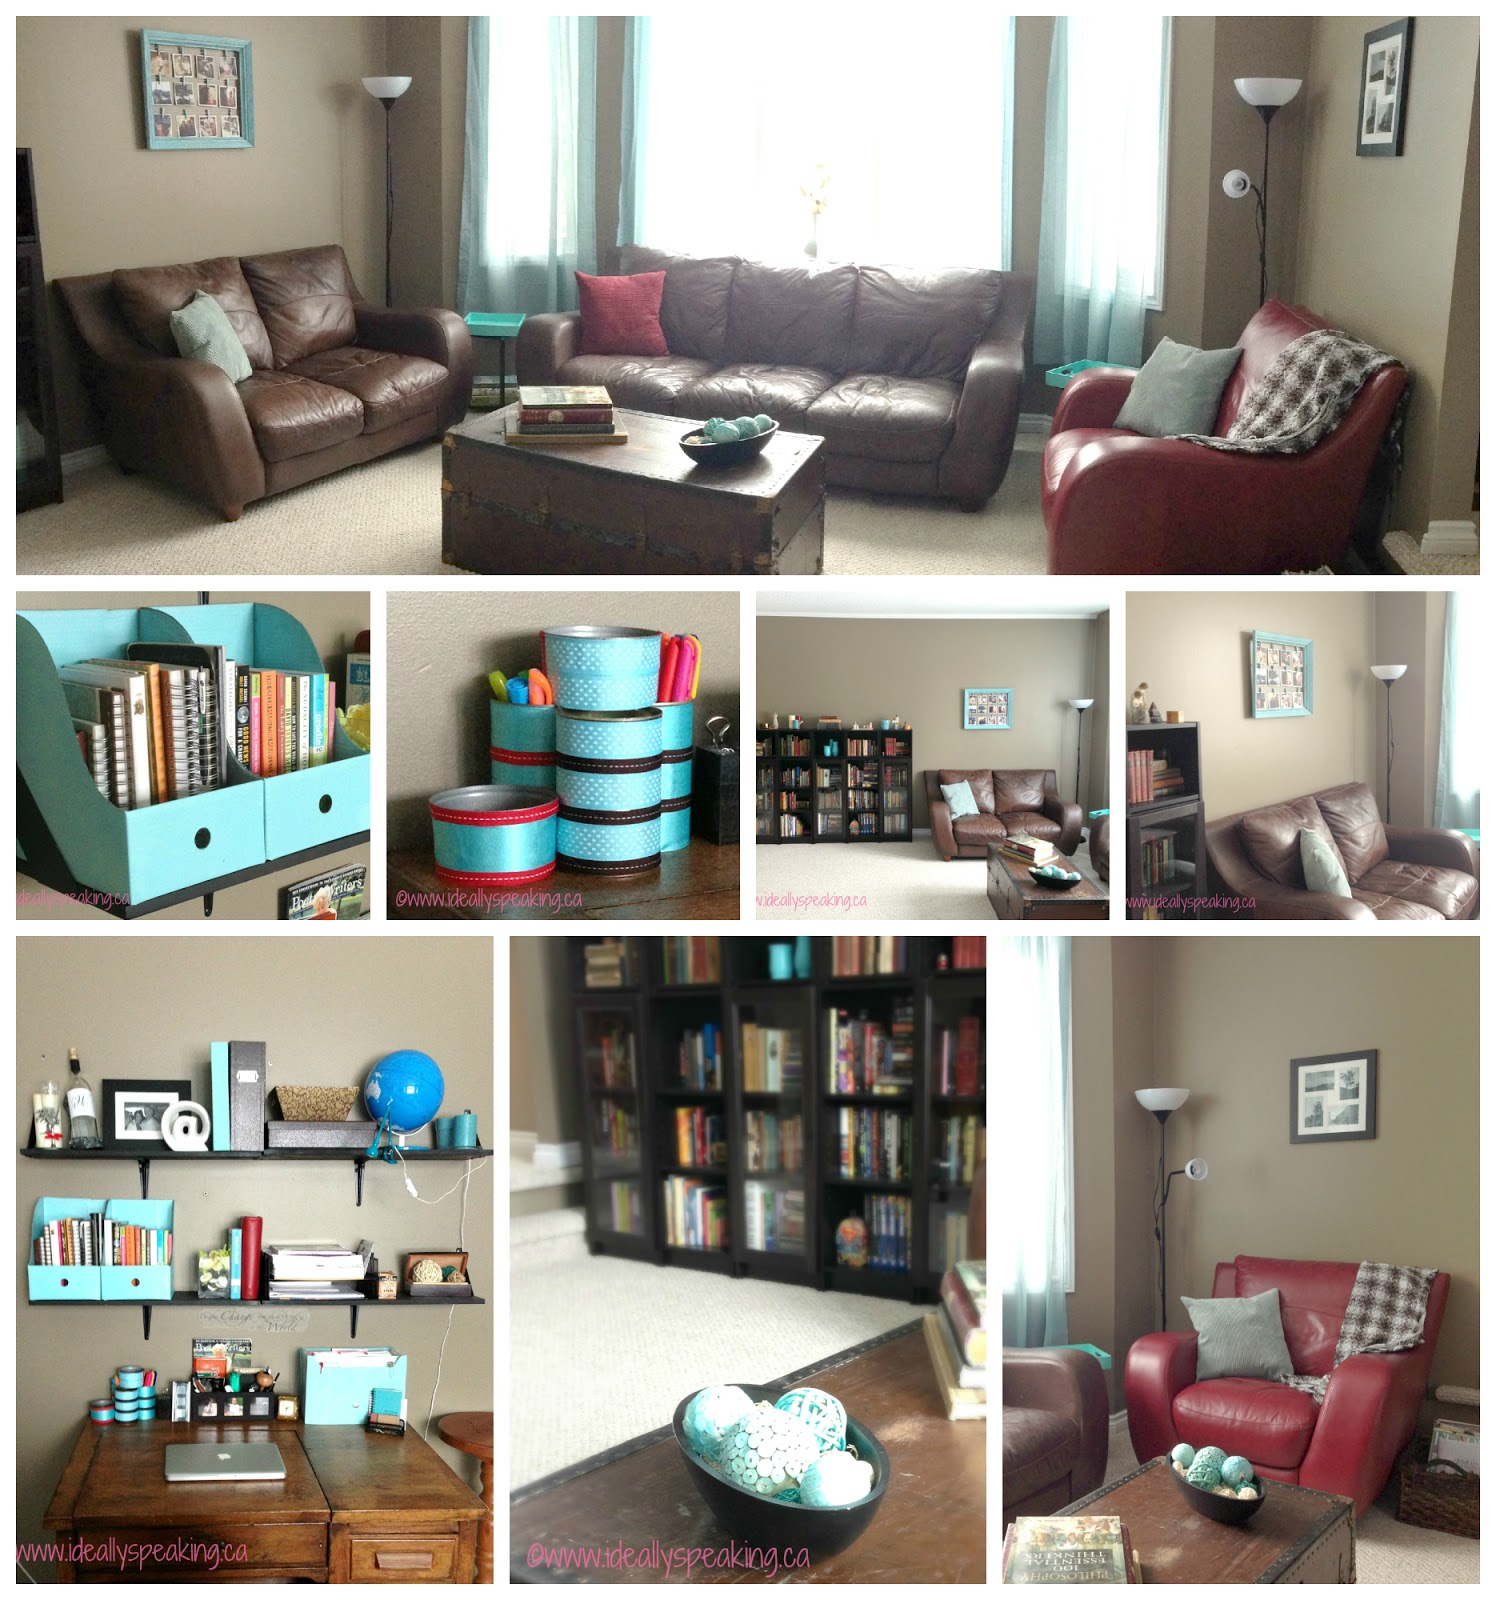 #PinterestHouseProject: The Study